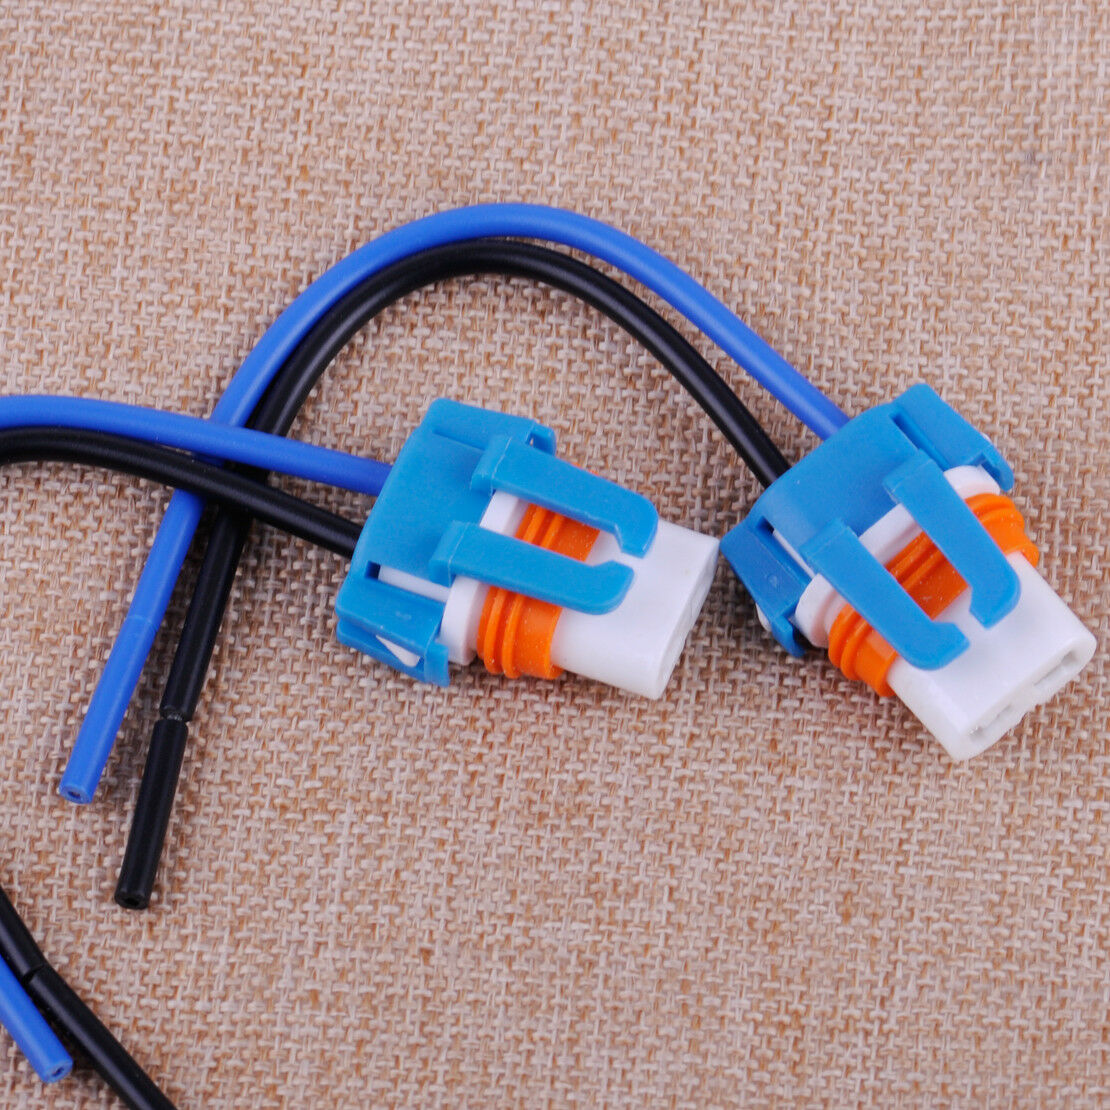 2x 9006 Hb4 Ceramic Female Socket Harness Pigtail Connector High Car Stereo Wire Adapter 1 Of 2only 4 Available See More